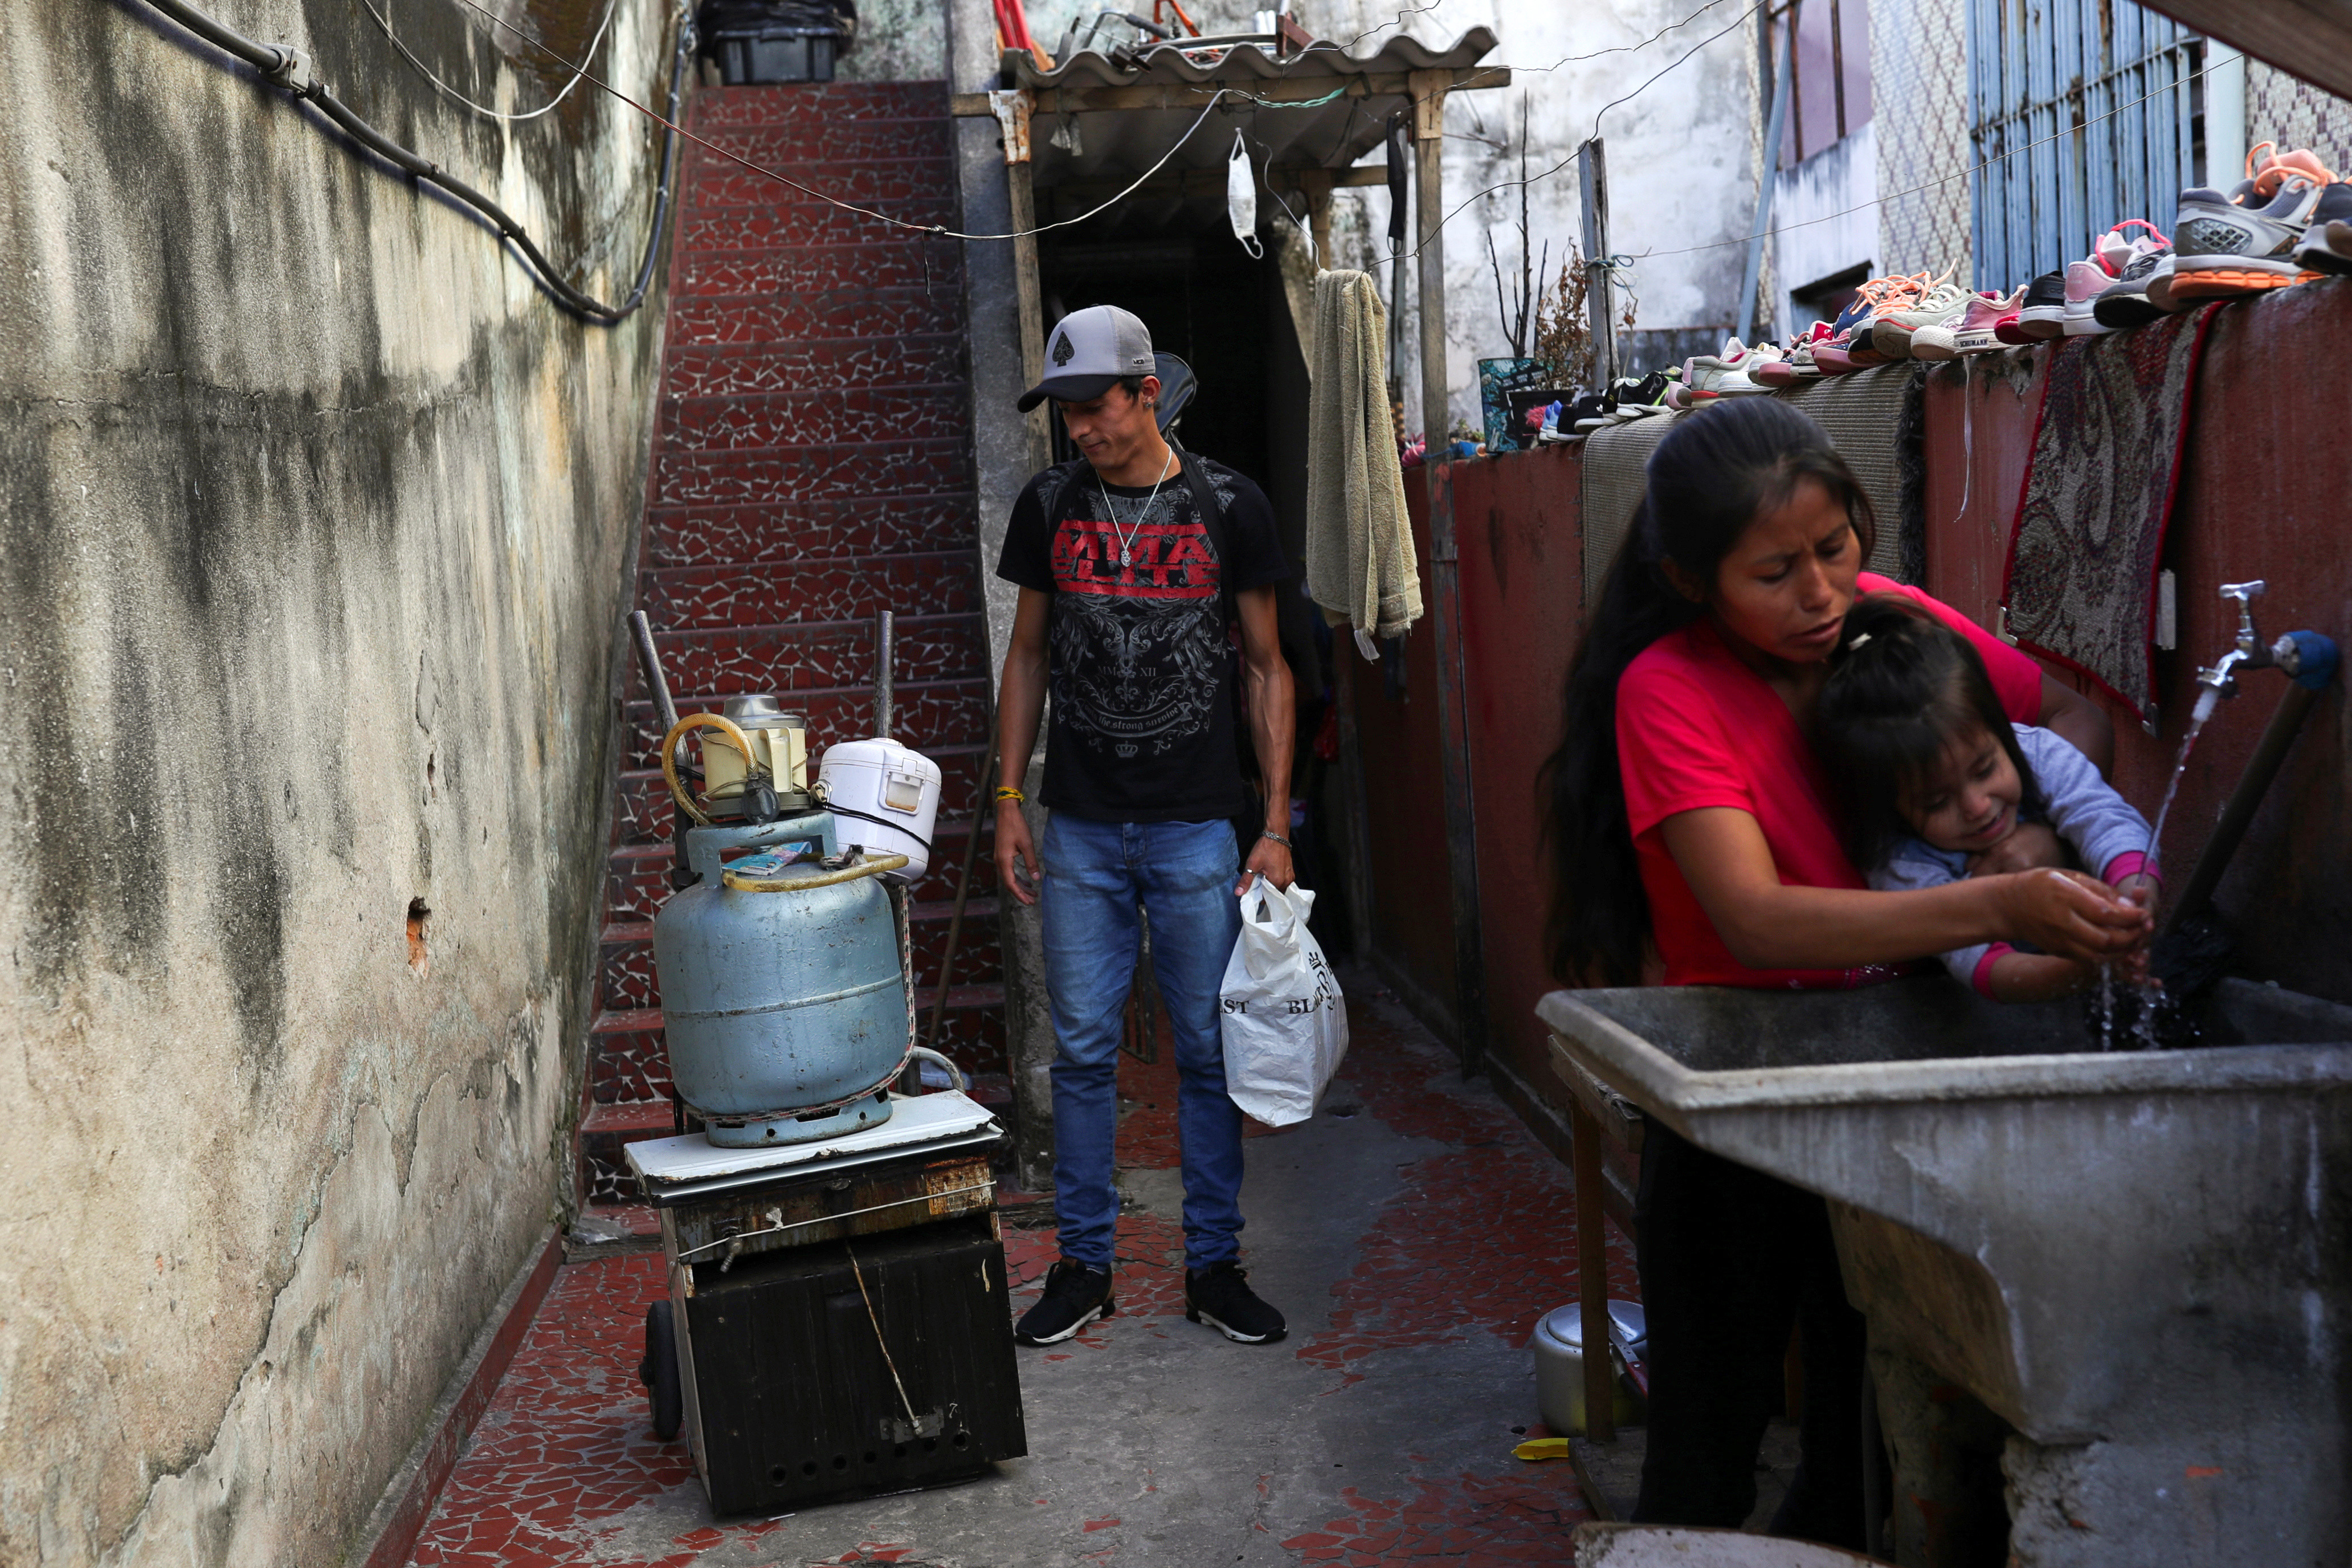 Douglas Felipe Alves Nascimento, 21, who lost his job at a textile firm and tries to make a living selling candy on the streets, looks at a cart with personal items he sold to pay the rent, during the coronavirus disease (COVID-19) pandemic, in Sao Paulo, Brazil August 4, 2020. Picture taken August 4, 2020. REUTERS/Amanda Perobelli - RC2PDJ9KH1DM